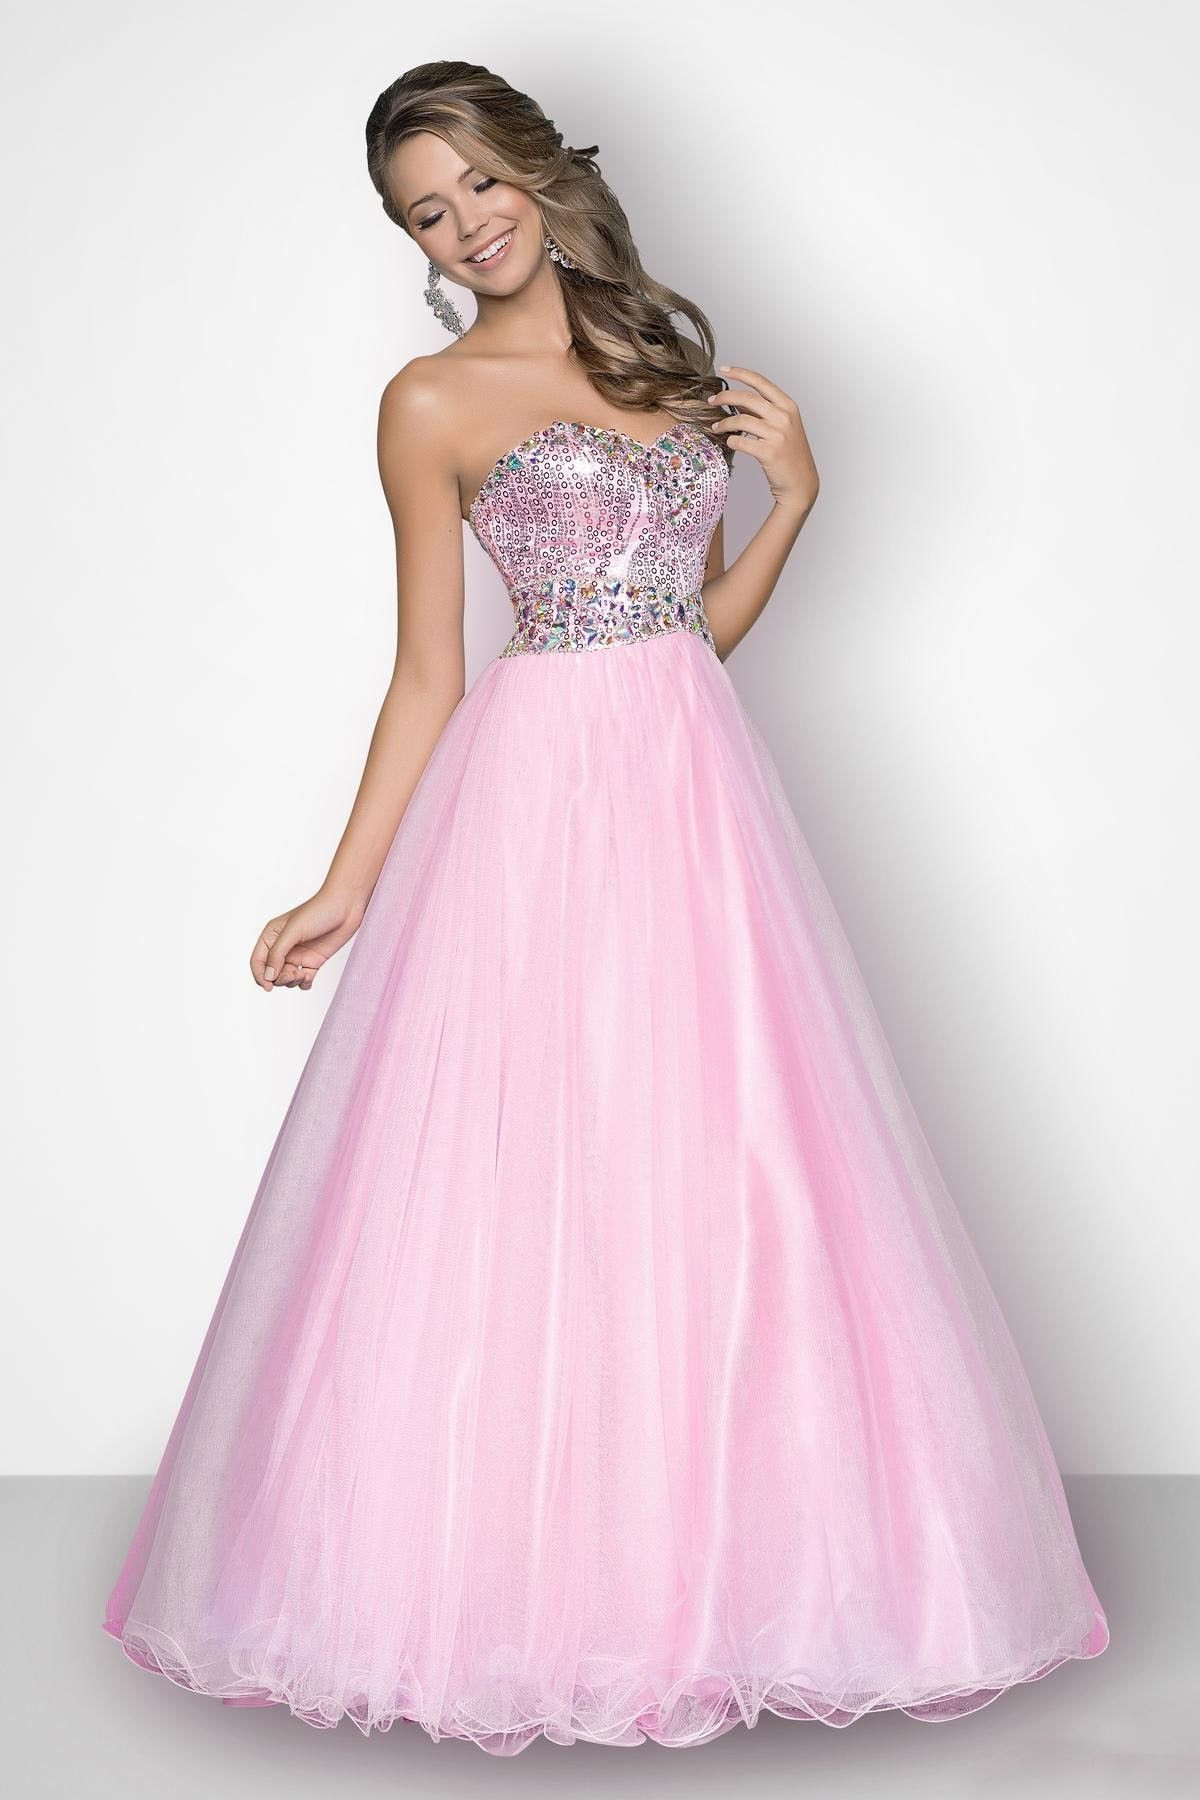 Silver and Pink Ball Gown Prom Dress, I would totally wear this ...